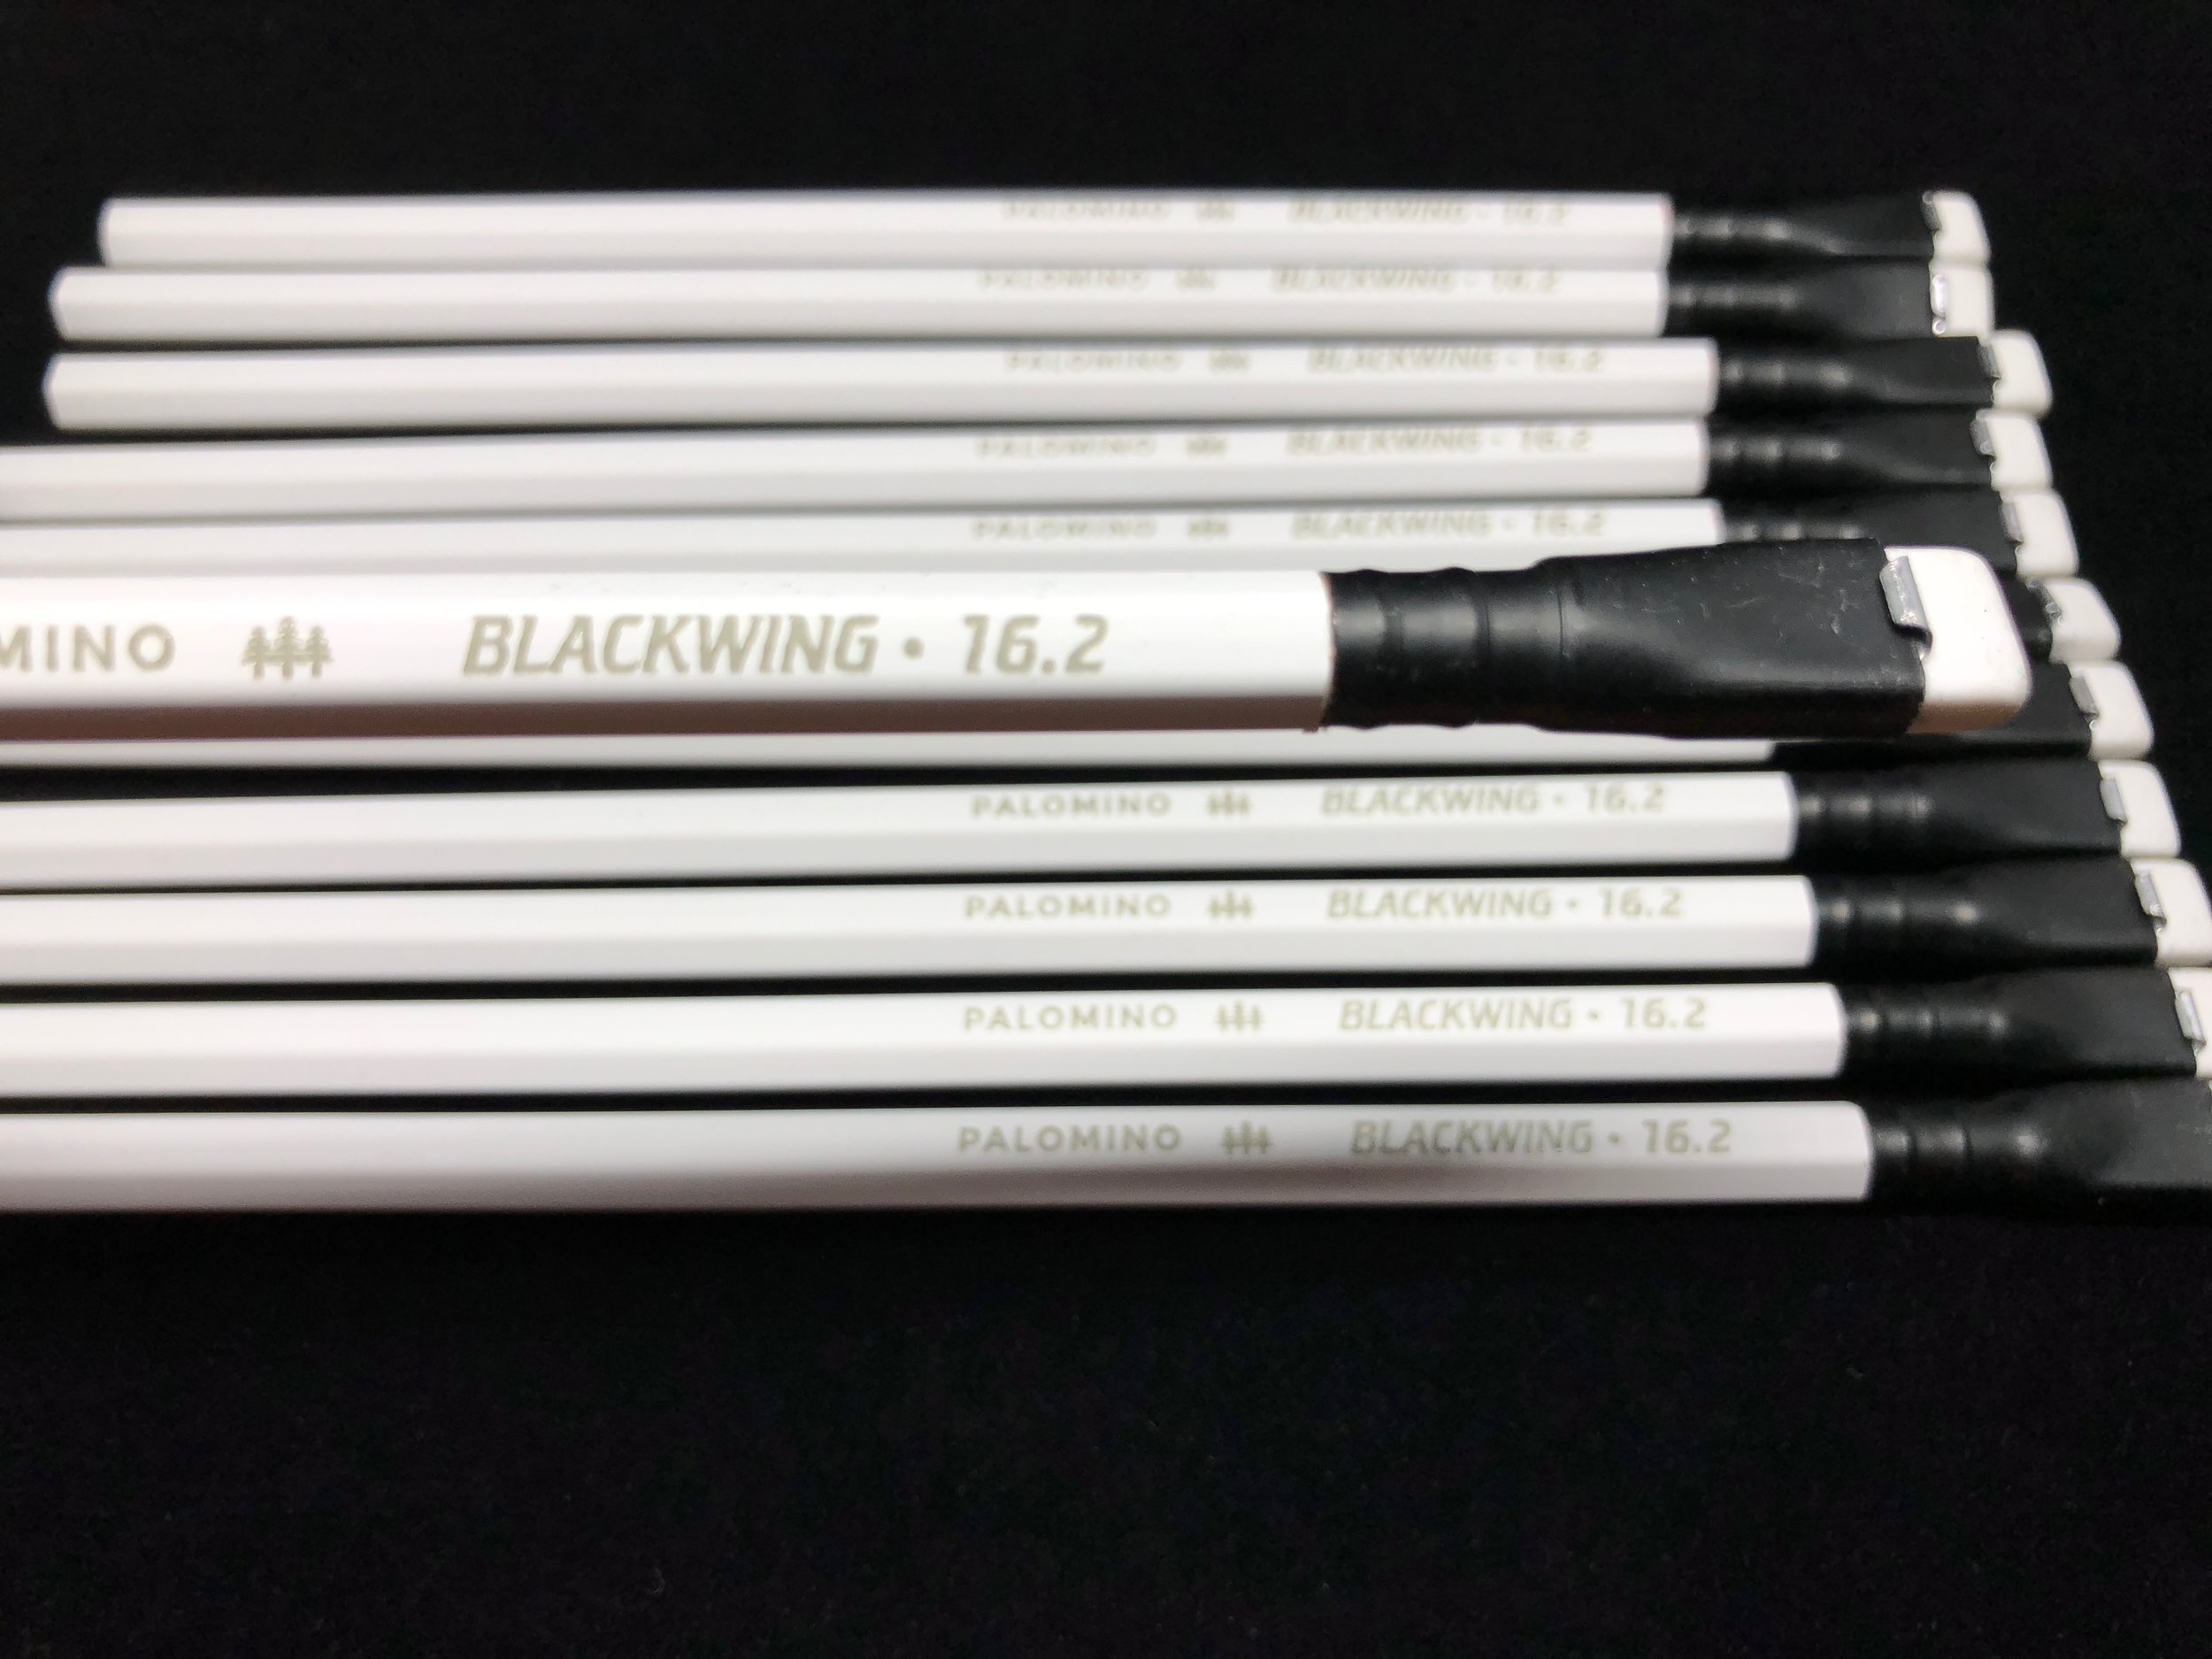 blackwing-16_2-pencil-8.jpg